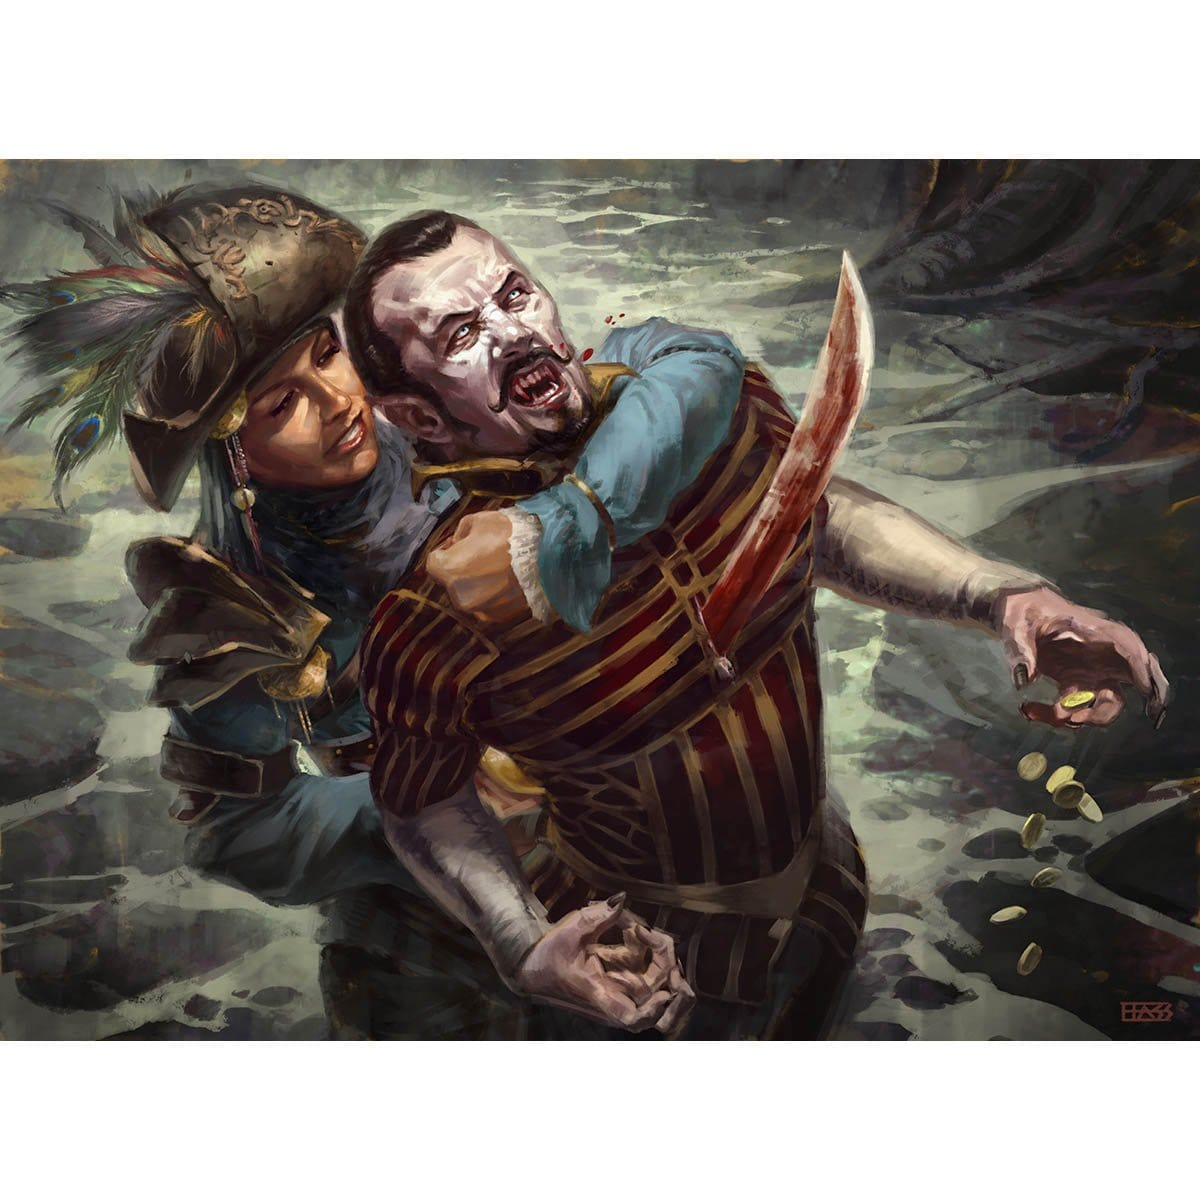 Impale Print - Print - Original Magic Art - Accessories for Magic the Gathering and other card games